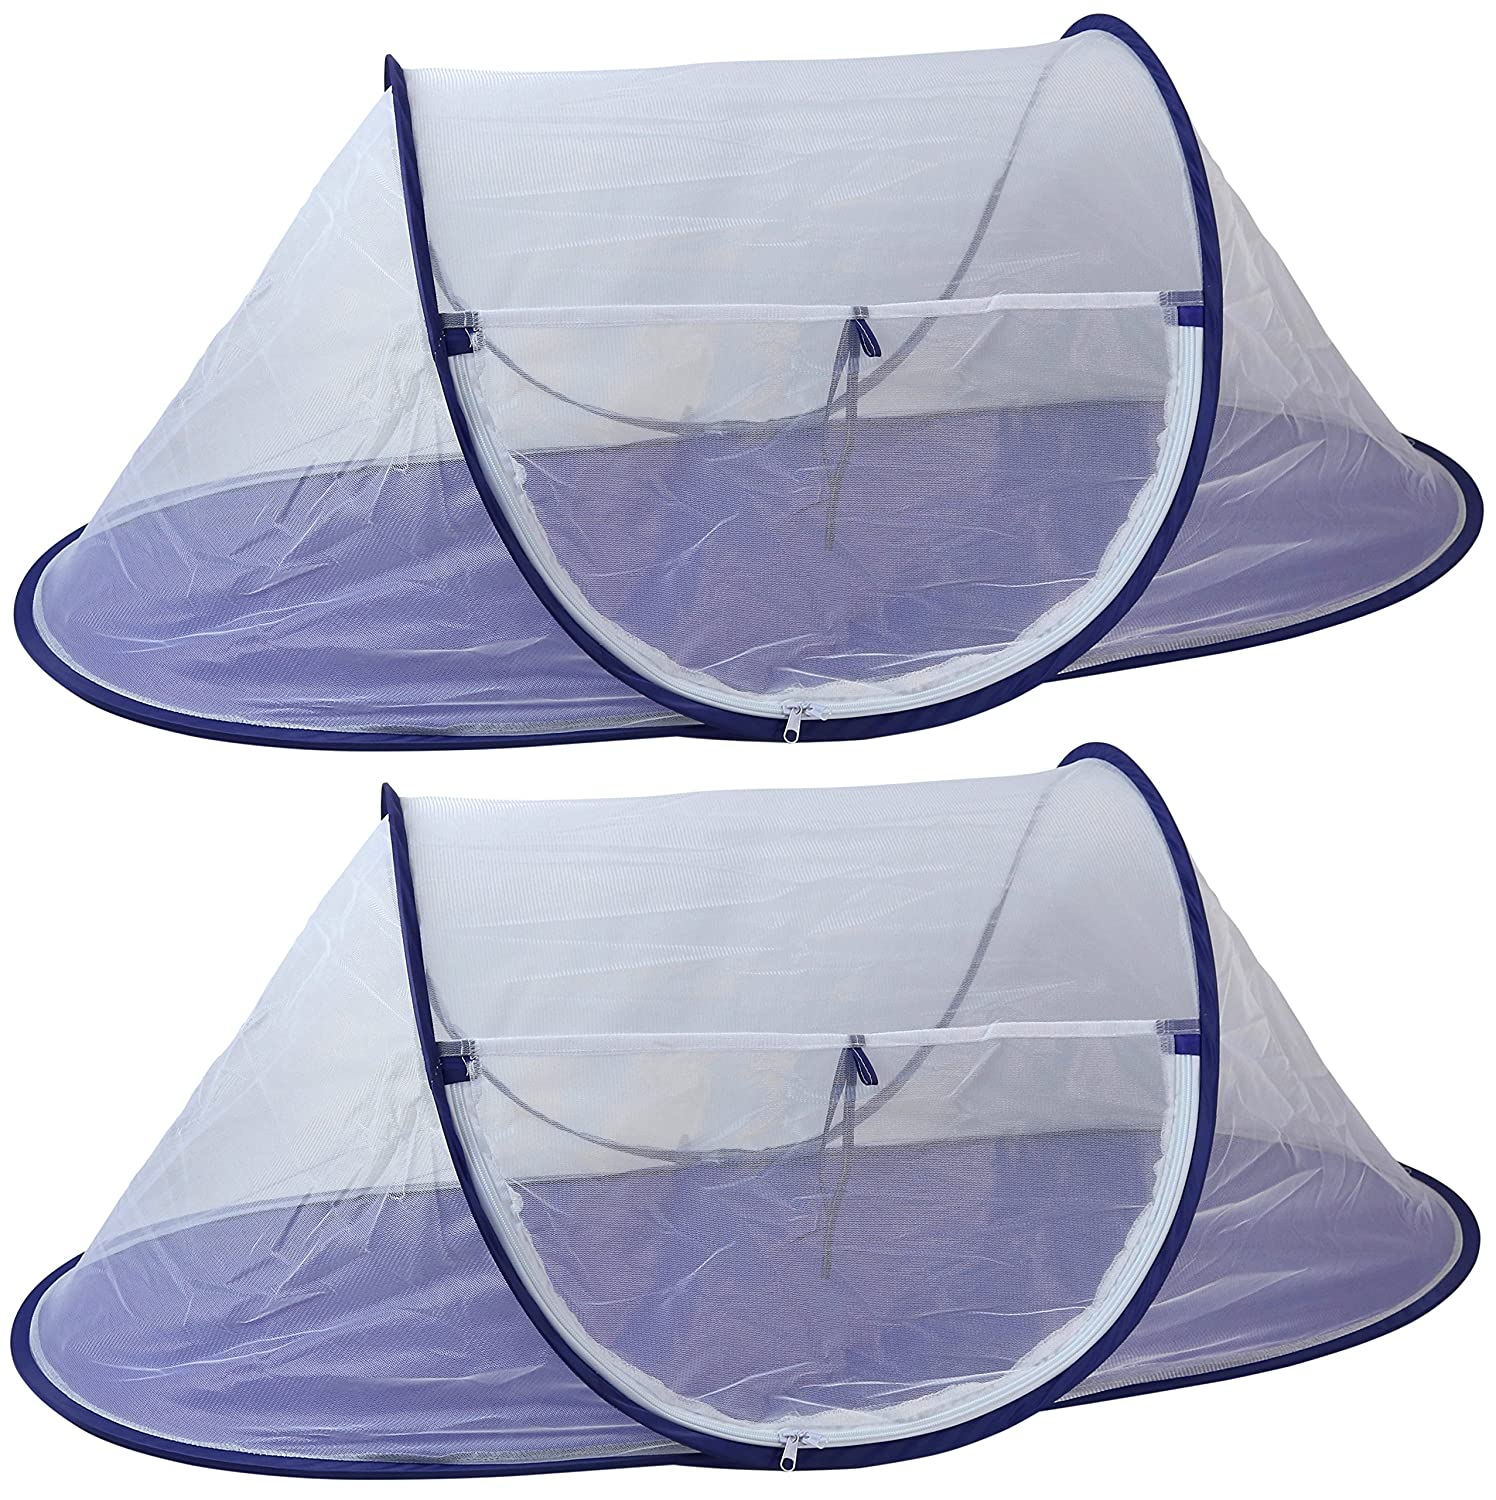 Large Folding Mesh Wind-Resistant Food Tent 43 x 21 inches, 2-Pack by Iconikal